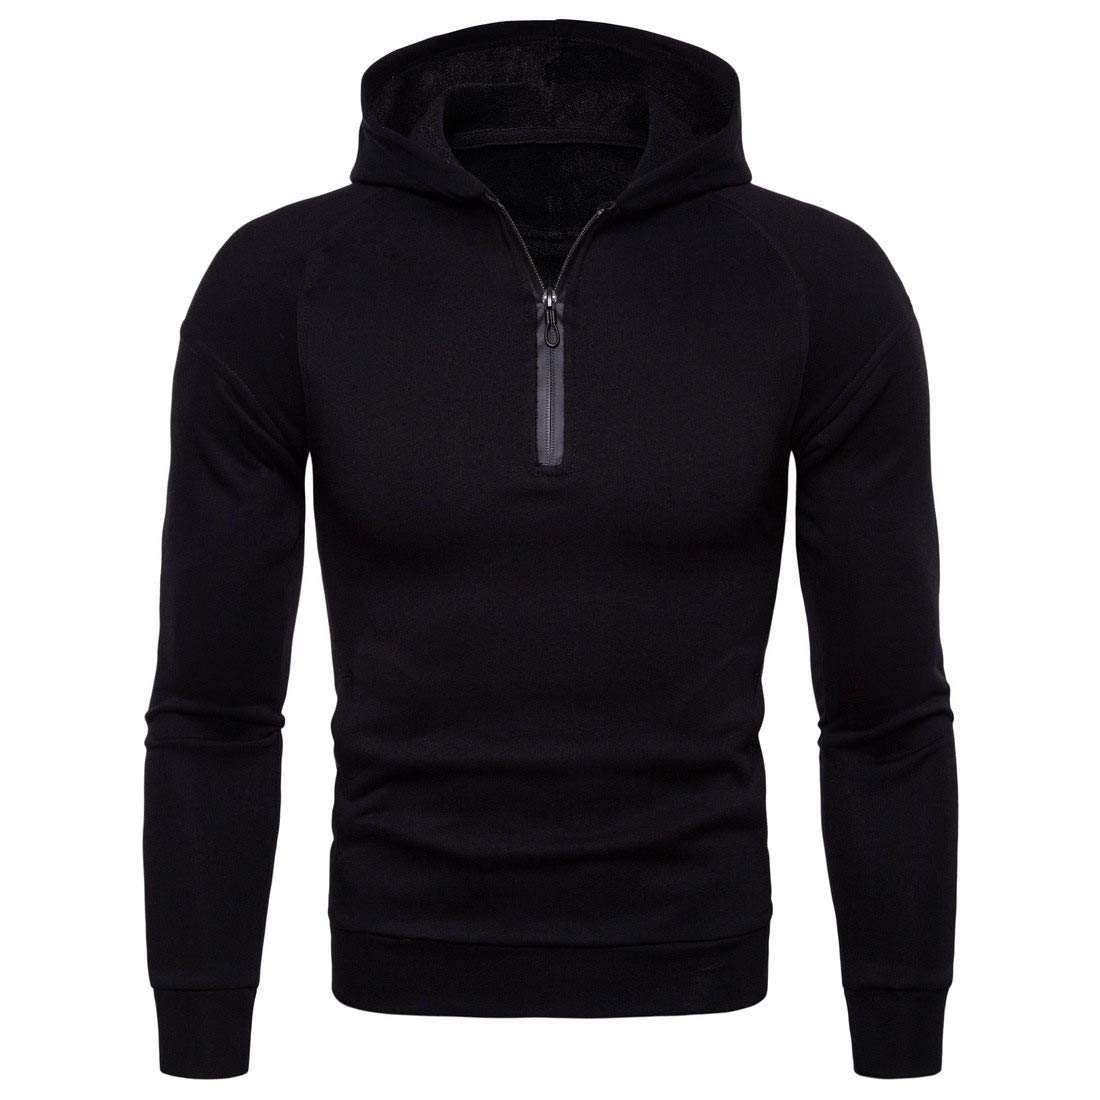 Abetteric Mens Solid Color Long-Sleeve Zipper Cozy T-Shirts Sweatshirt Hoodies